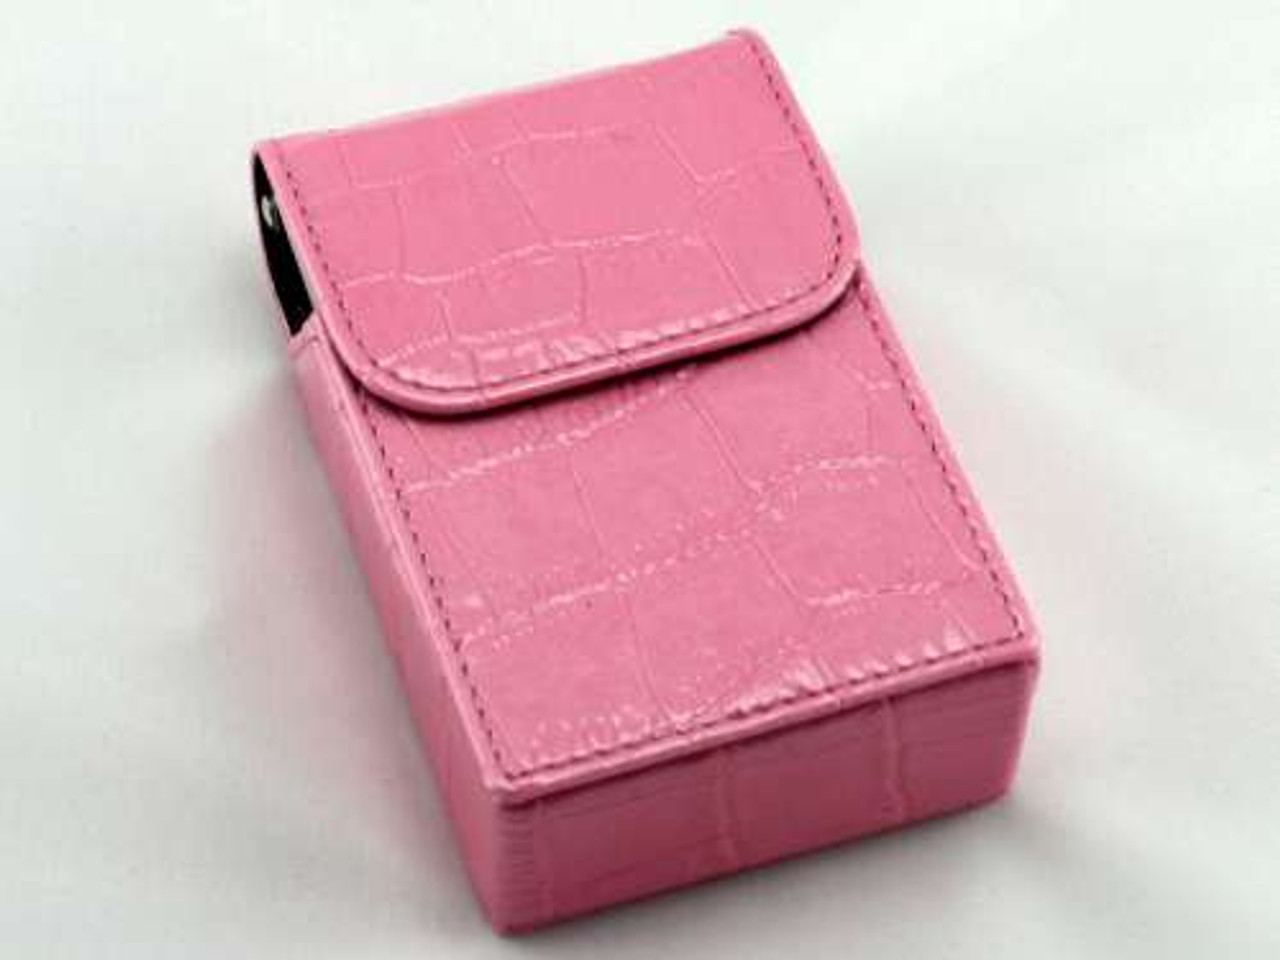 Pink Crocodile Cigarette Pack Holder